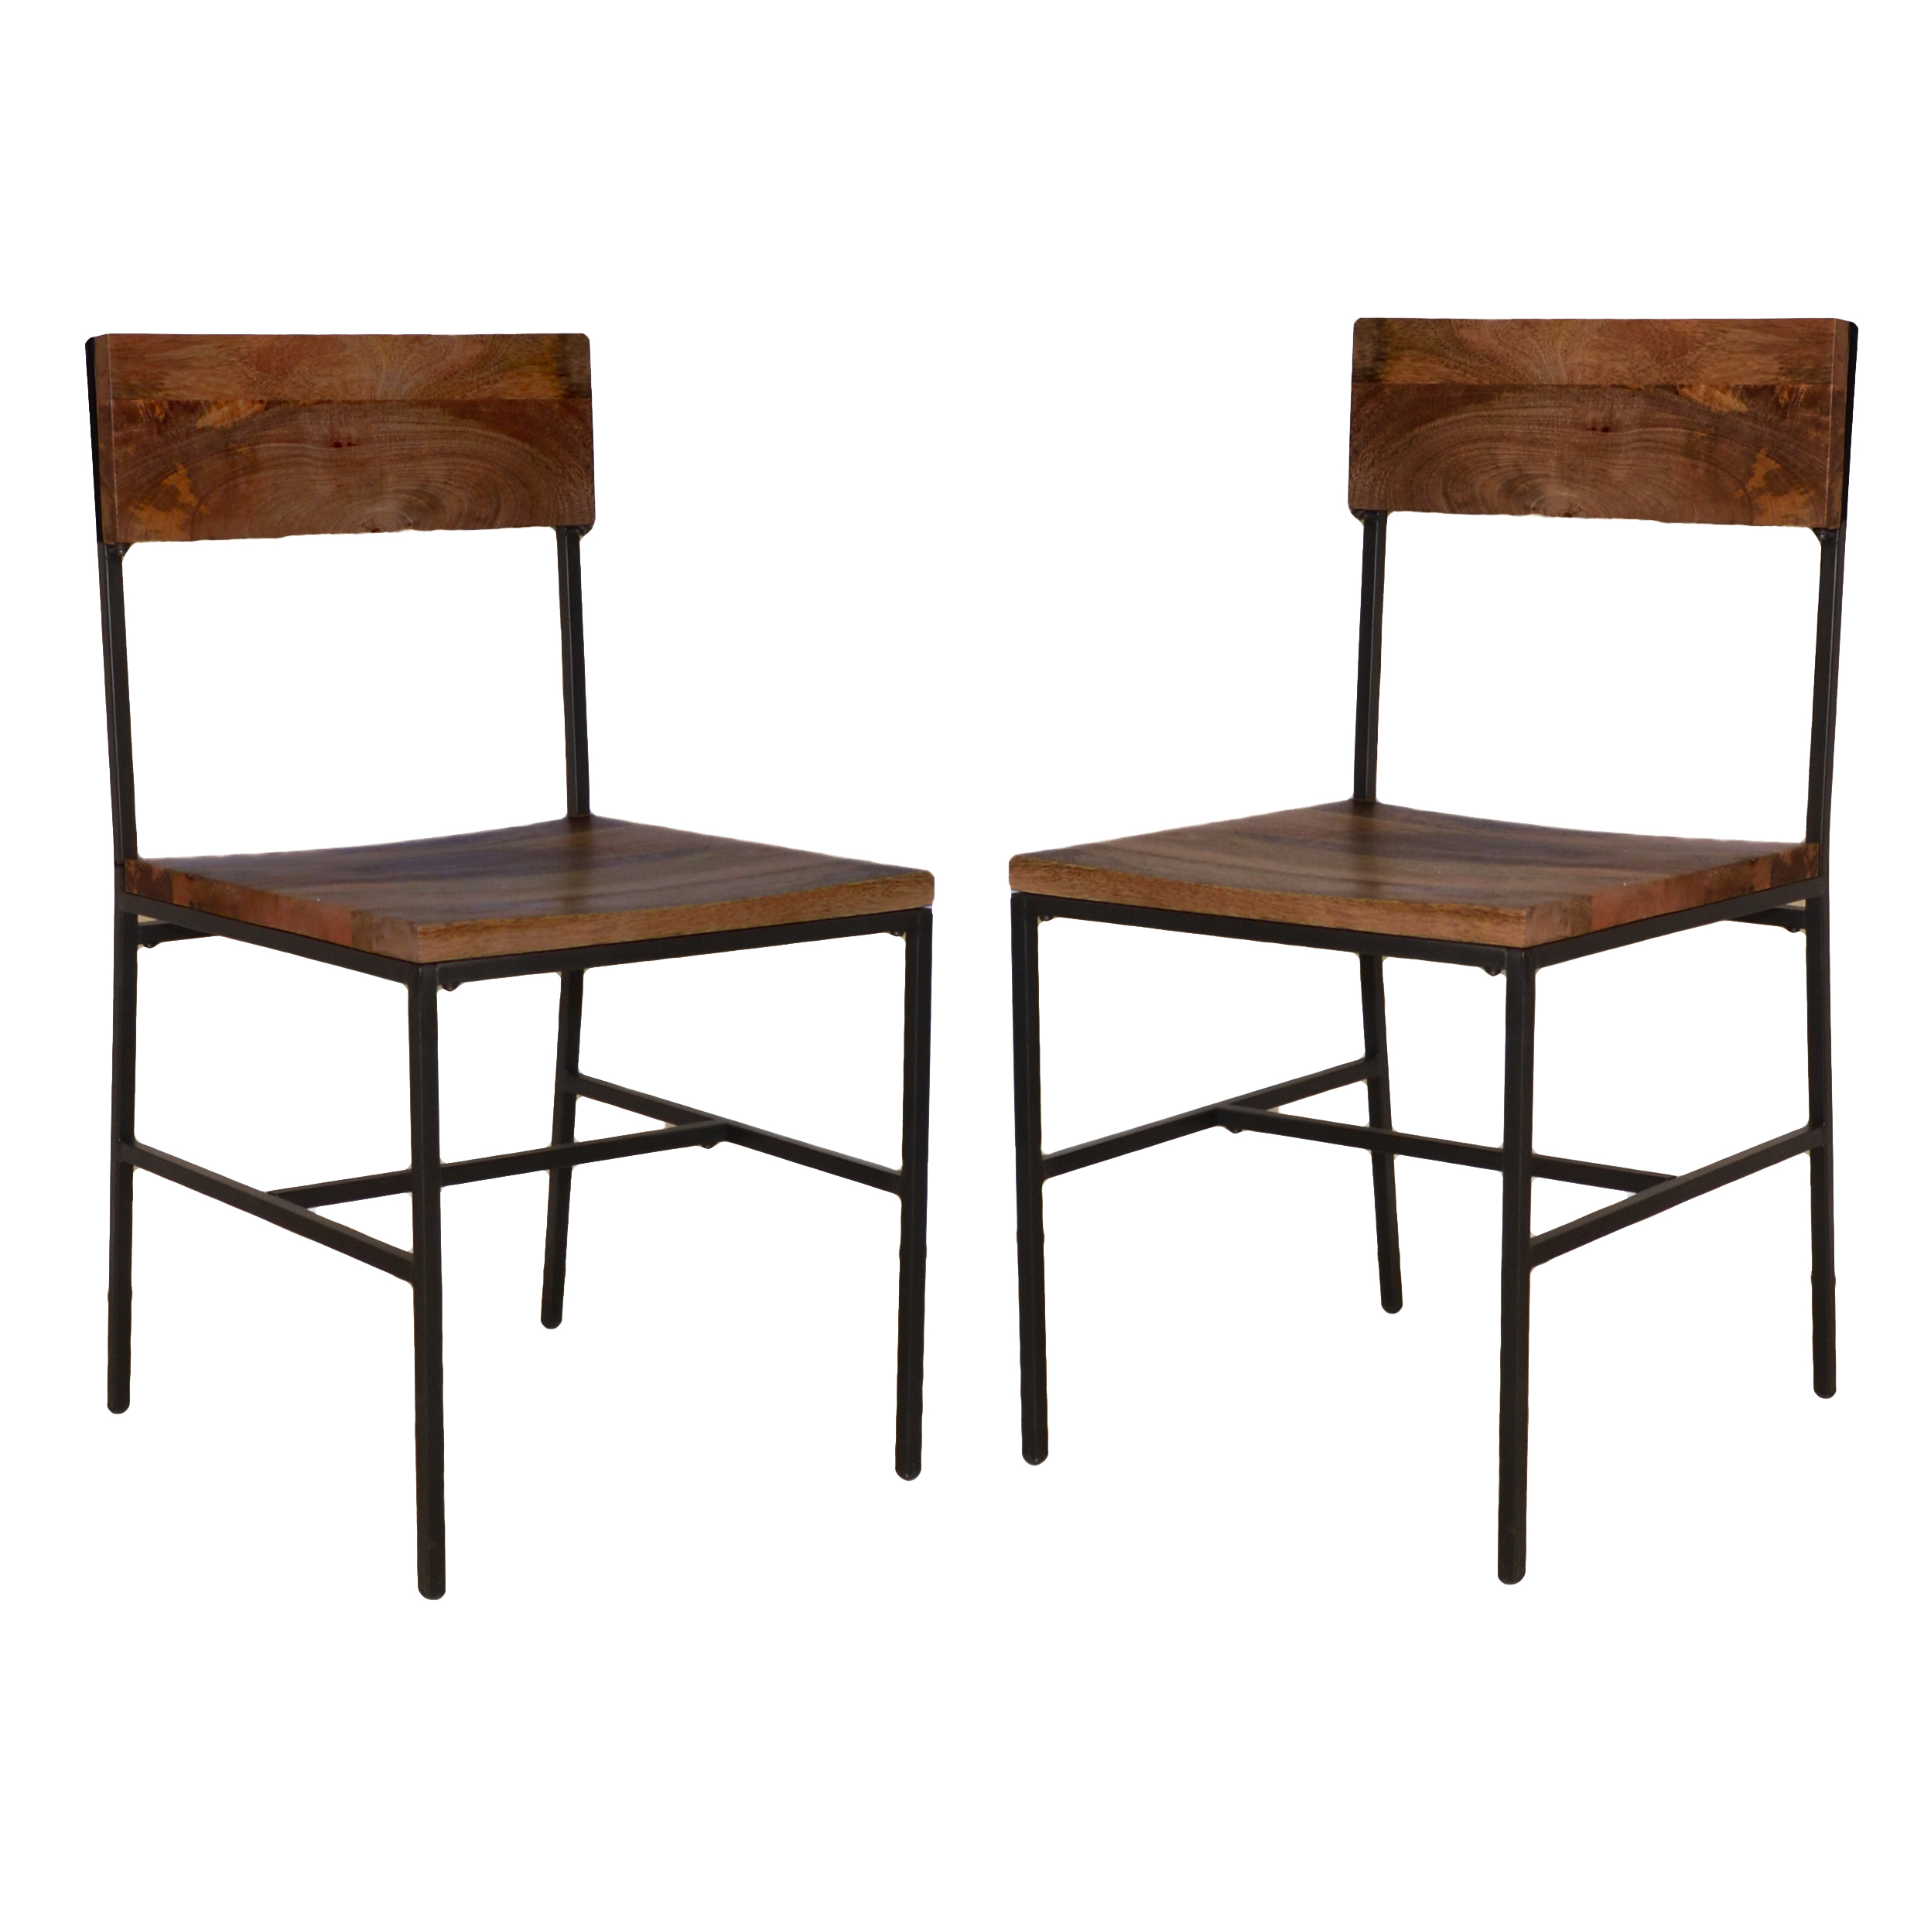 Elmsley Dining Chair Set of 2, Chestnut